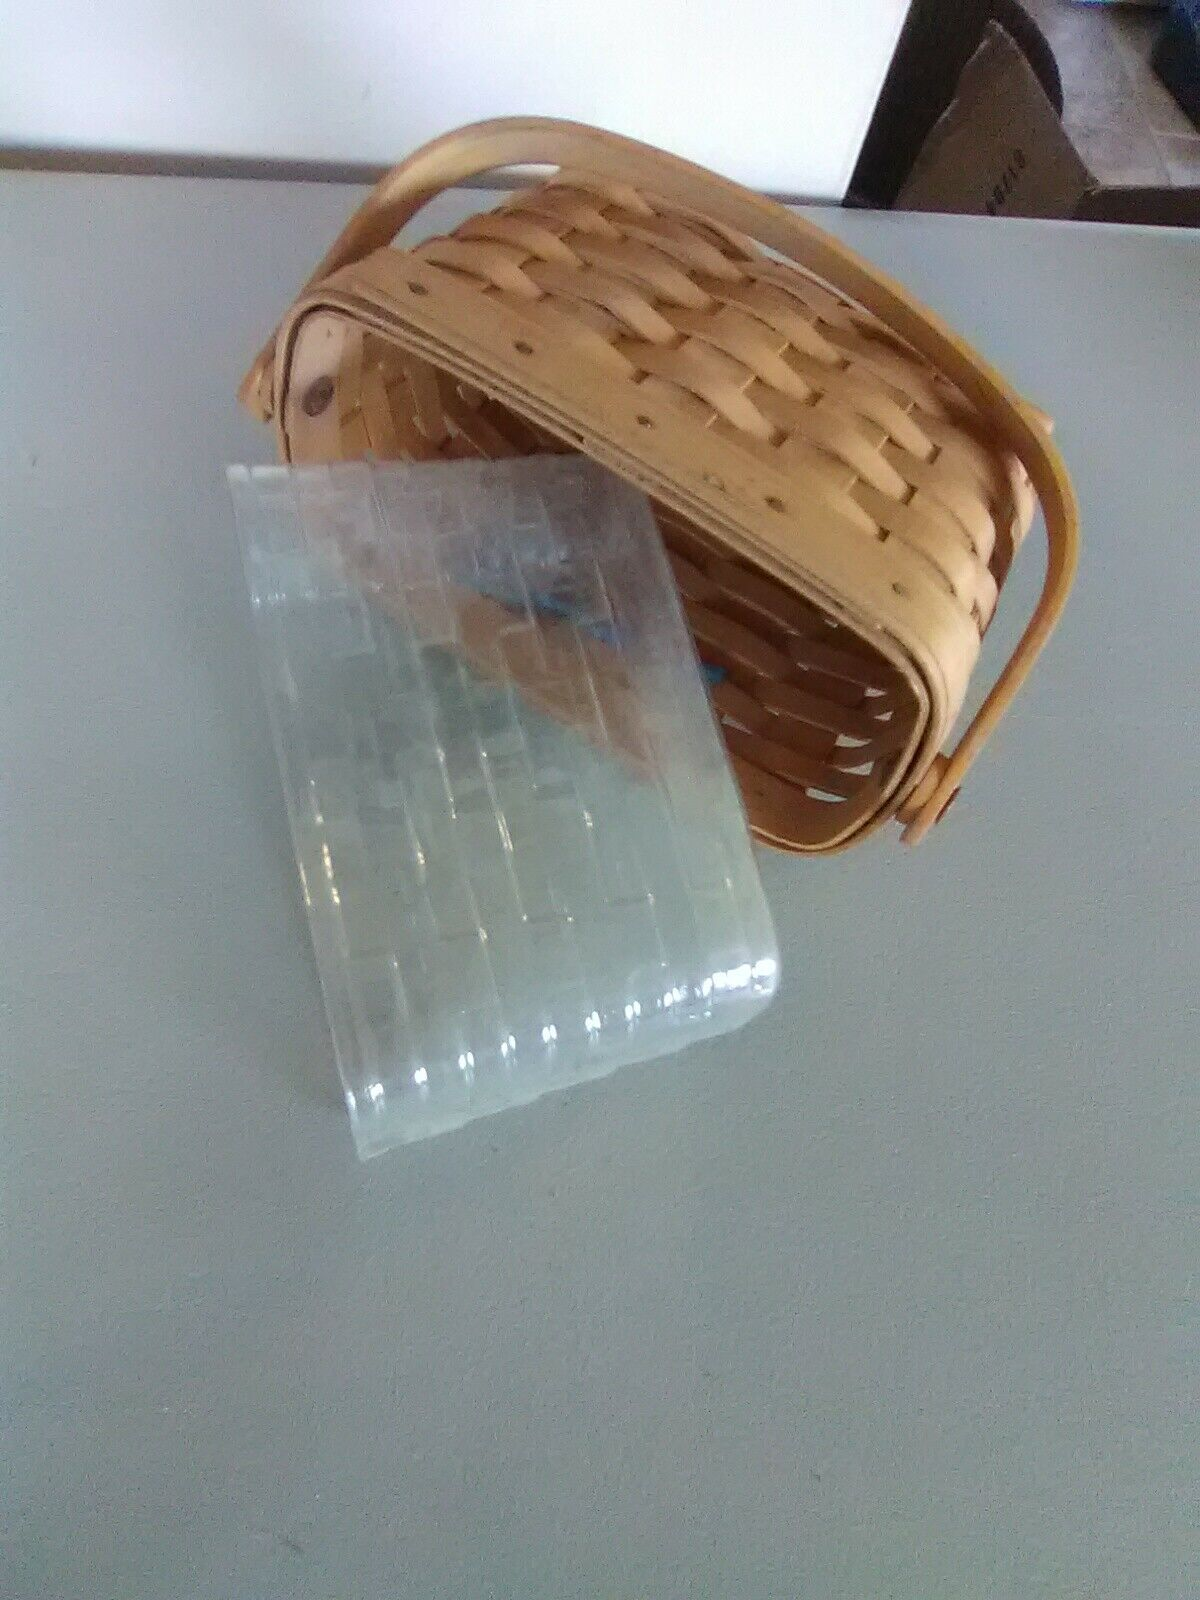 1996 Edition Longaberger Swing Handle Dresden Tour Basket w/ Plastic Liner image 7